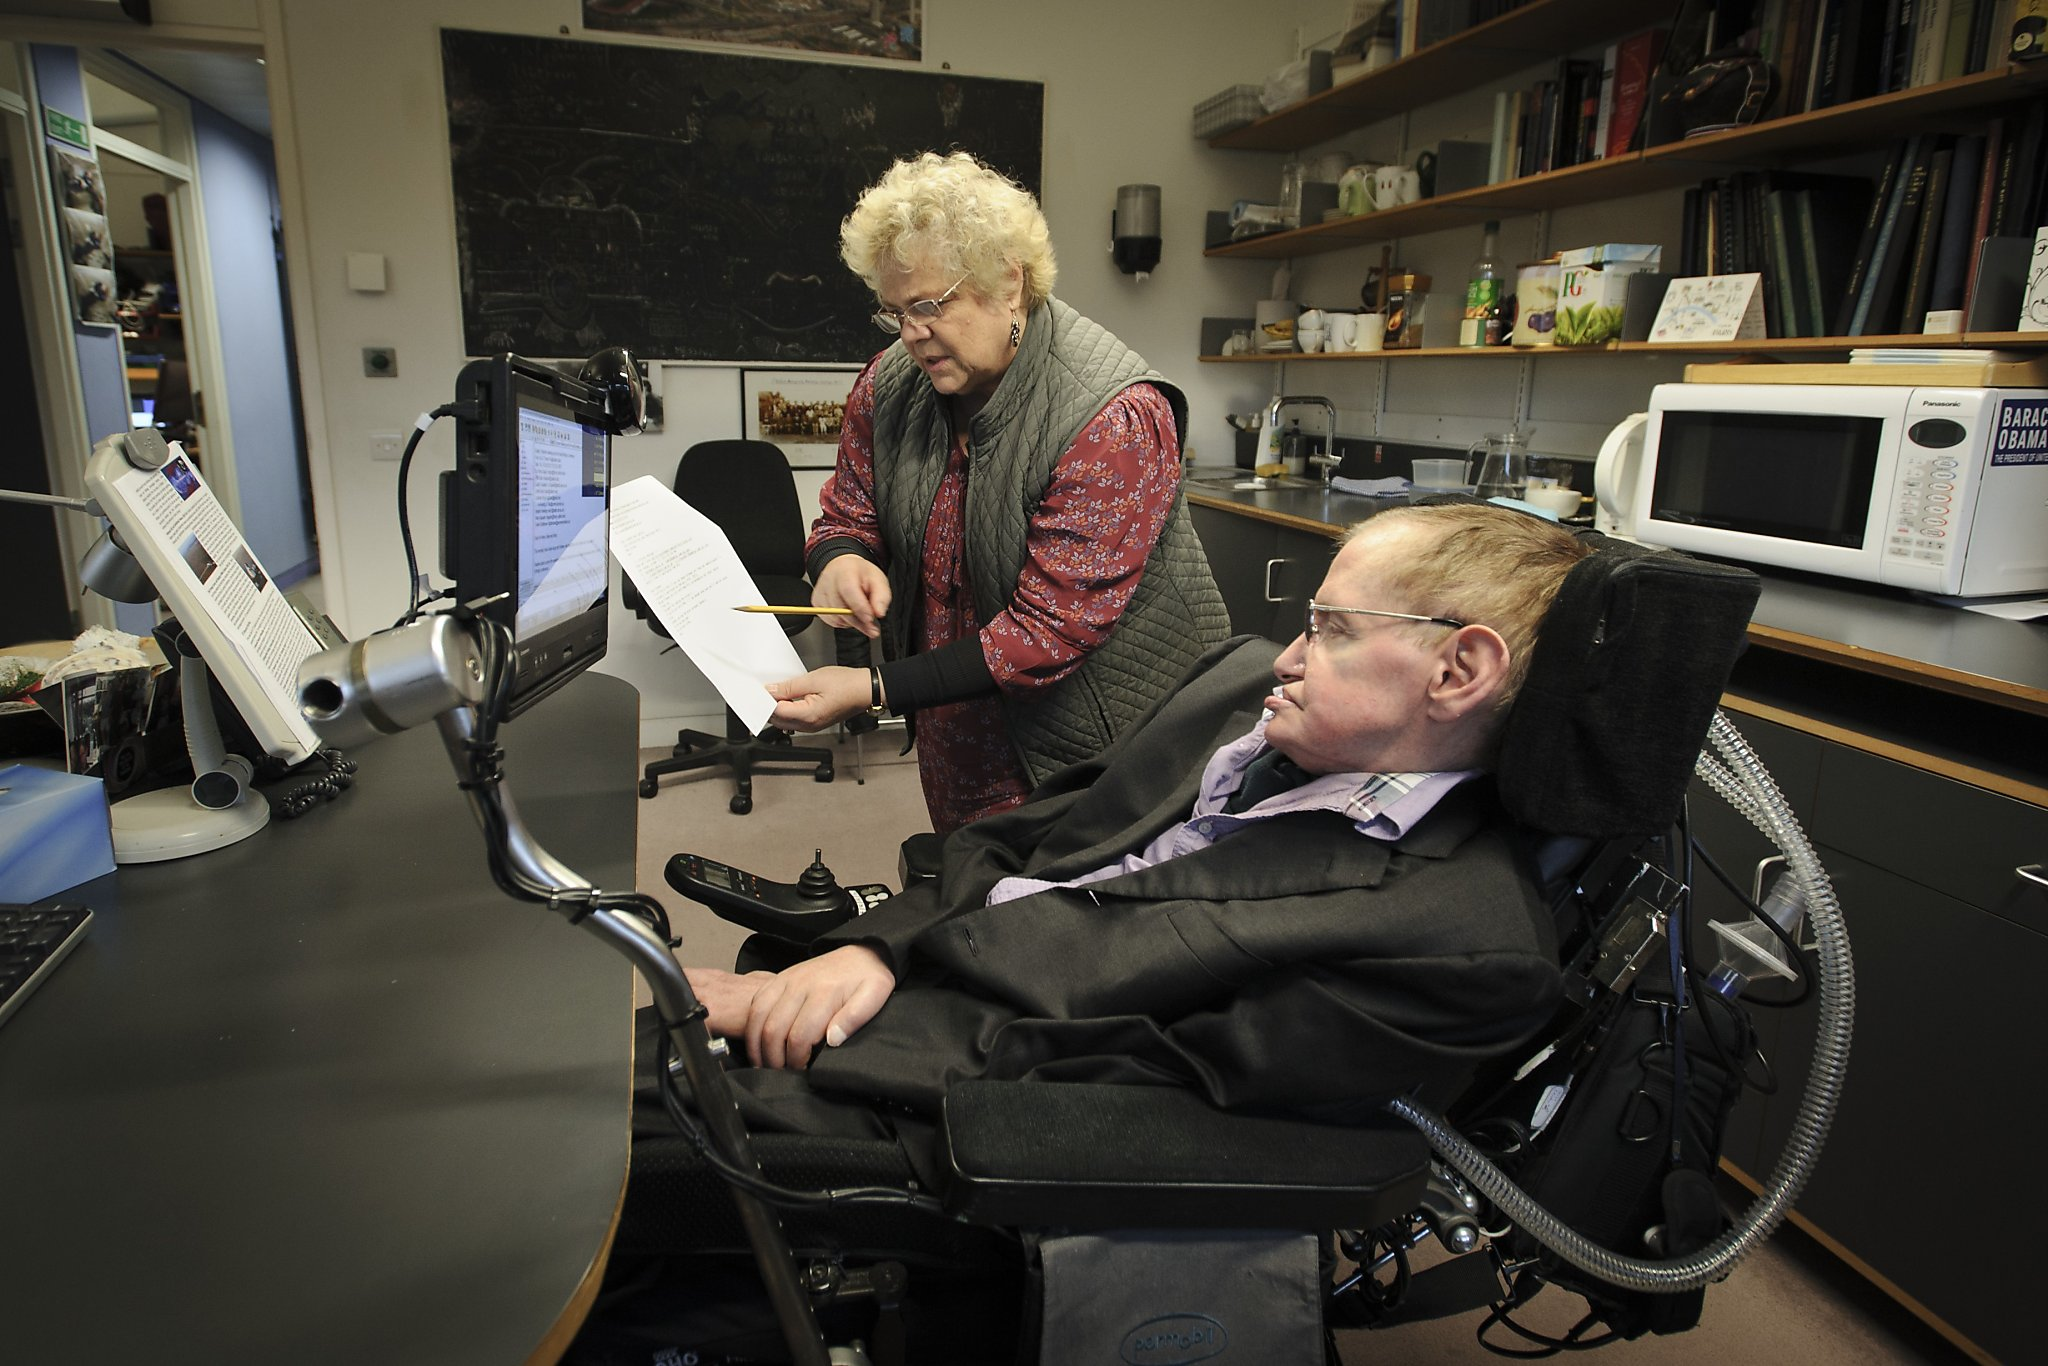 hawking review documentary shows scientist s brilliance sfgate hawking review documentary shows scientist s brilliance sfgate